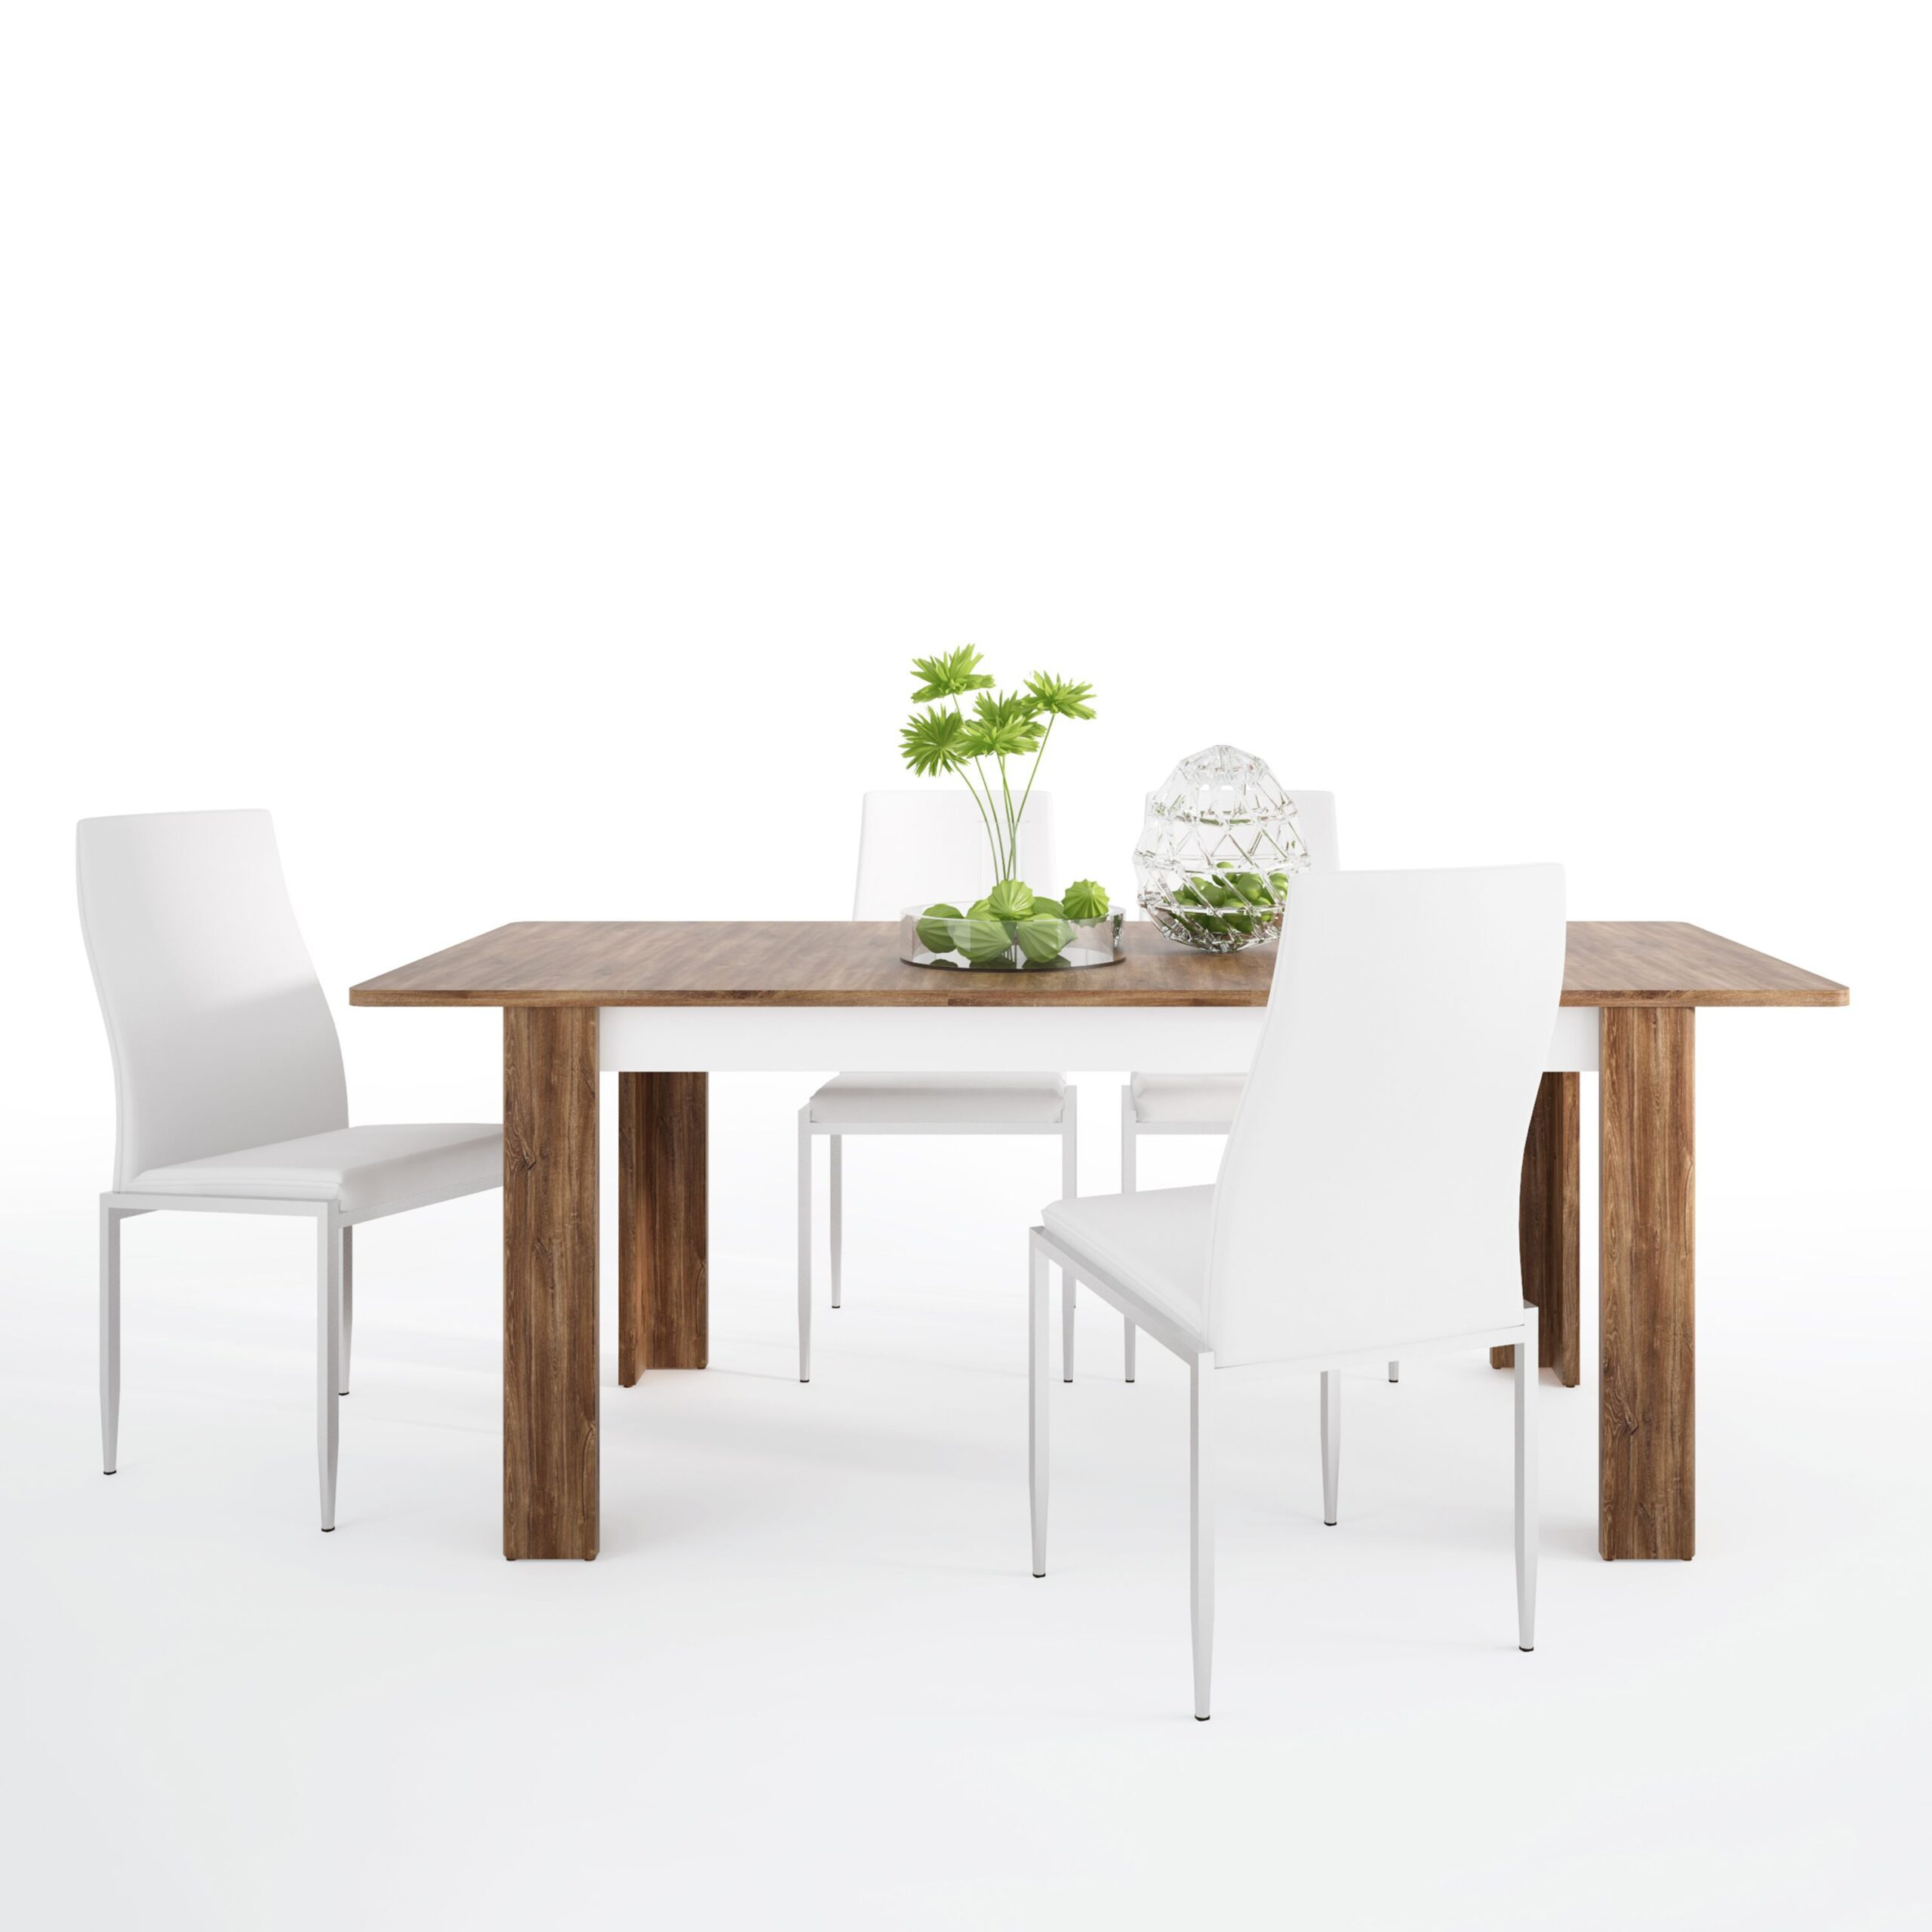 Delly Dining set package Delly extending dining table + 4 Lillie High Back Chair White.